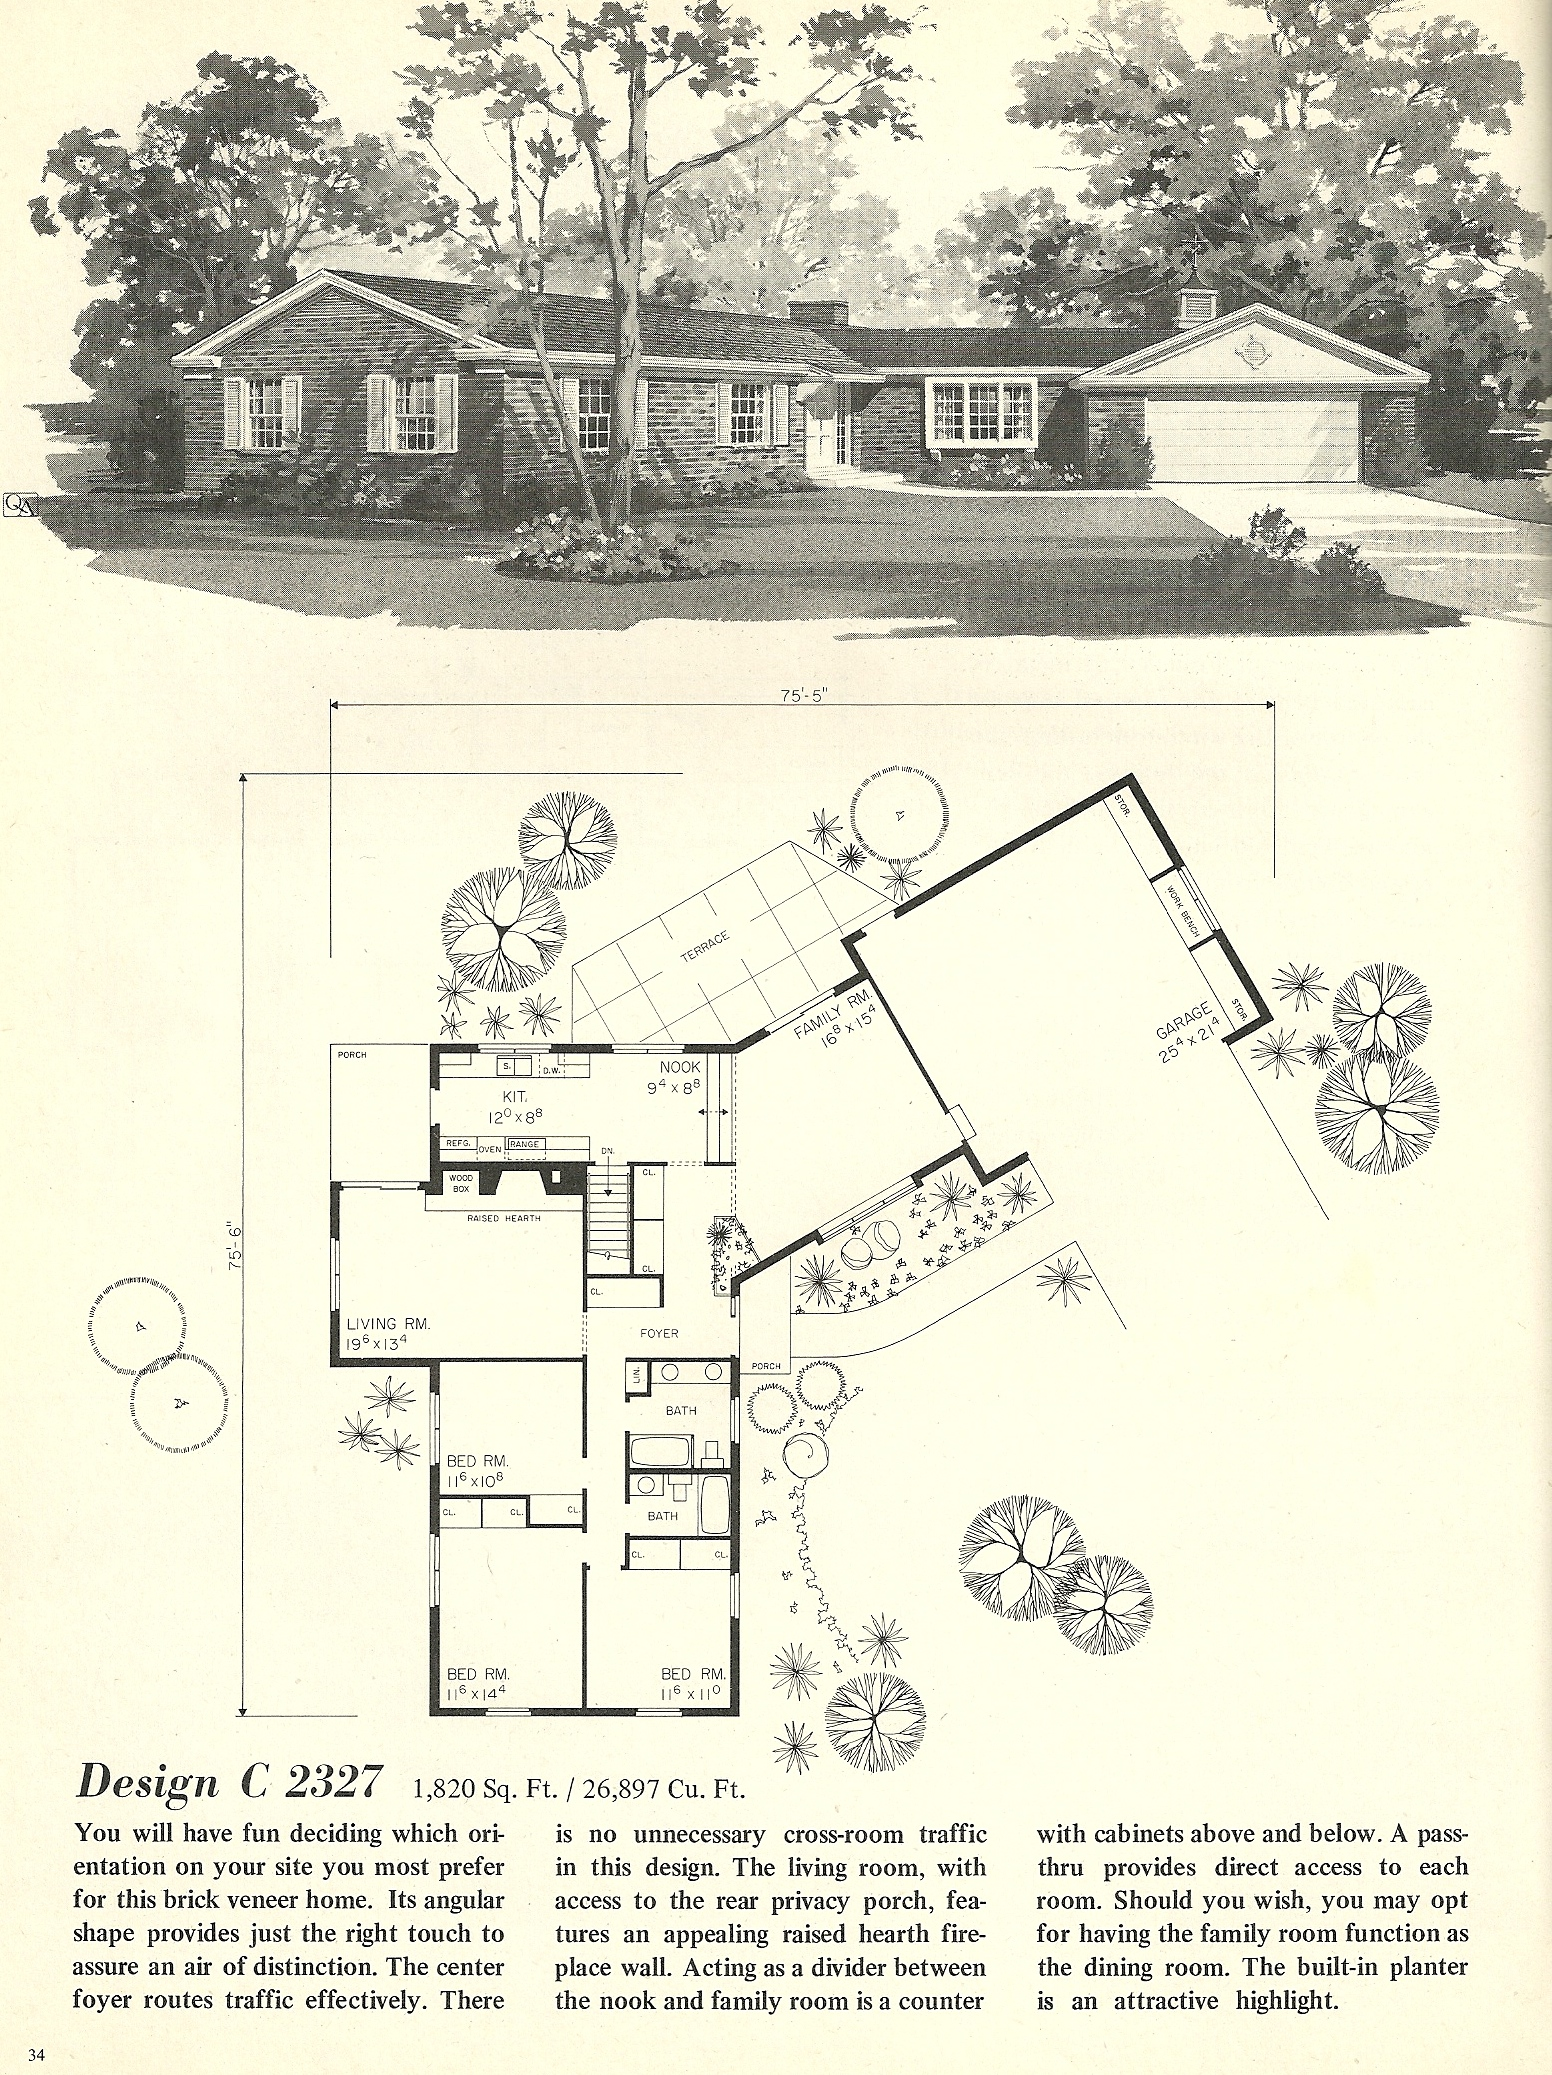 Vintage house plans 2327 antique alter ego for Vintage ranch house plans